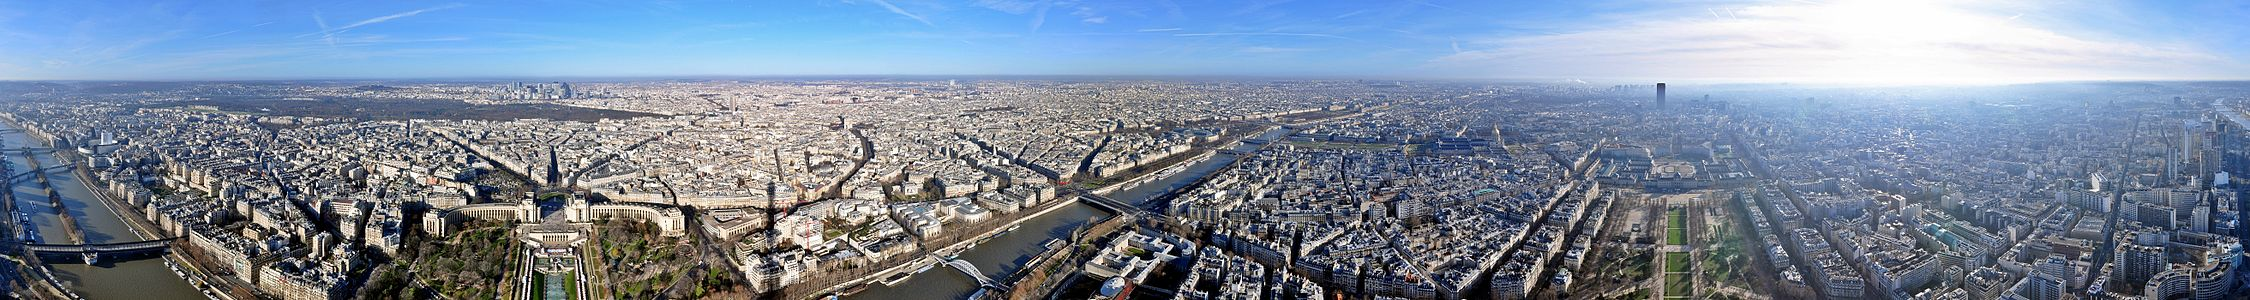 Panorama of Paris from the Tour Eiffel